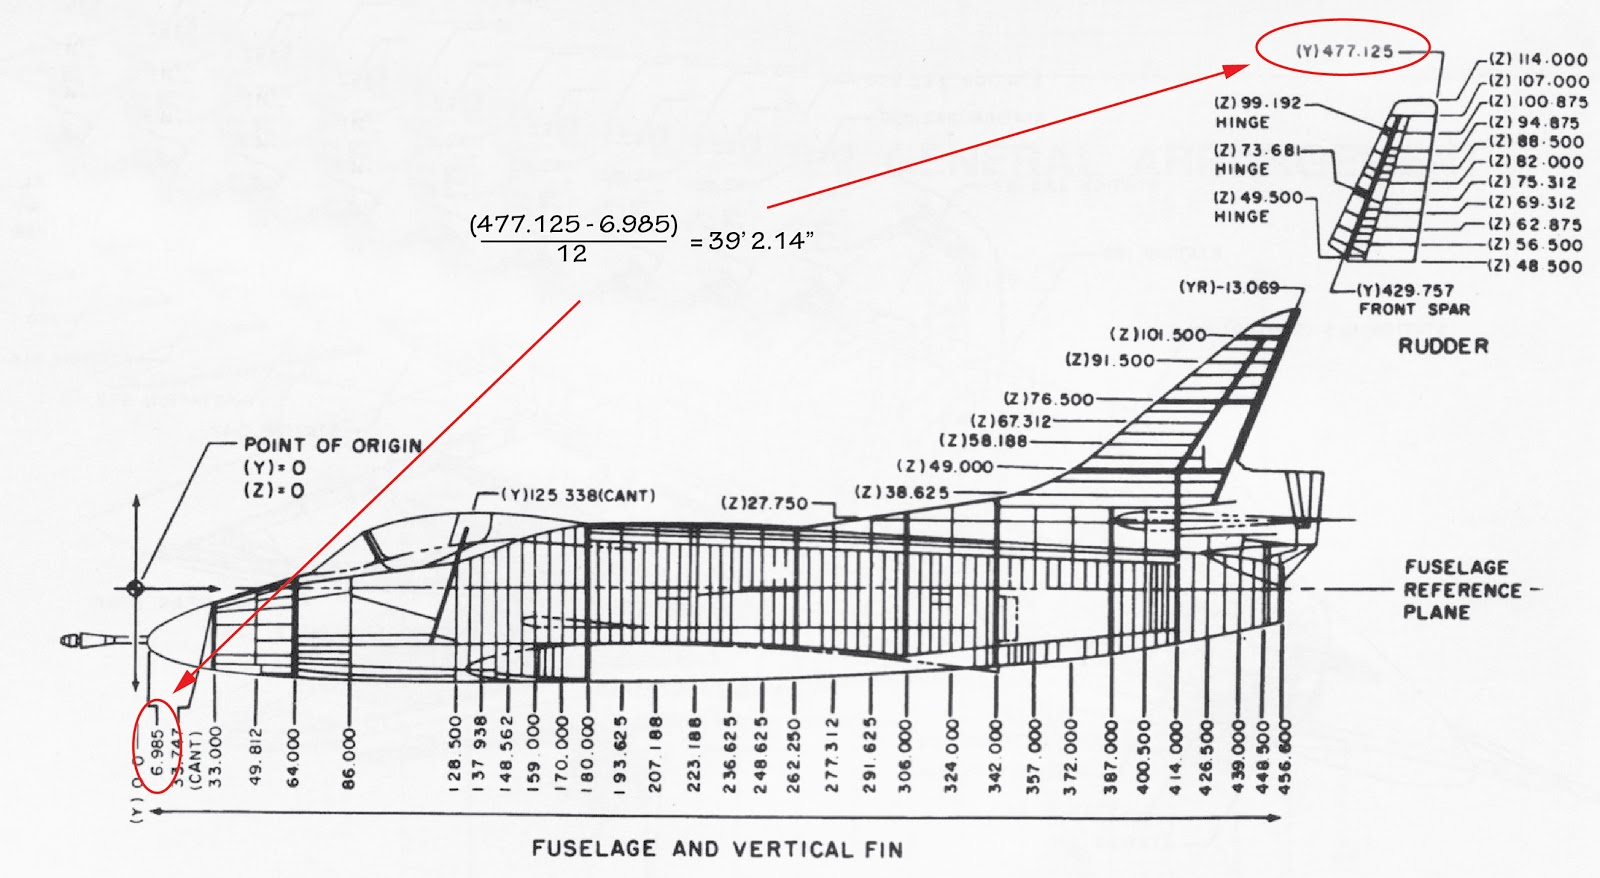 Douglas Aircraft Fuselage Station Diagram Pictures To Pin